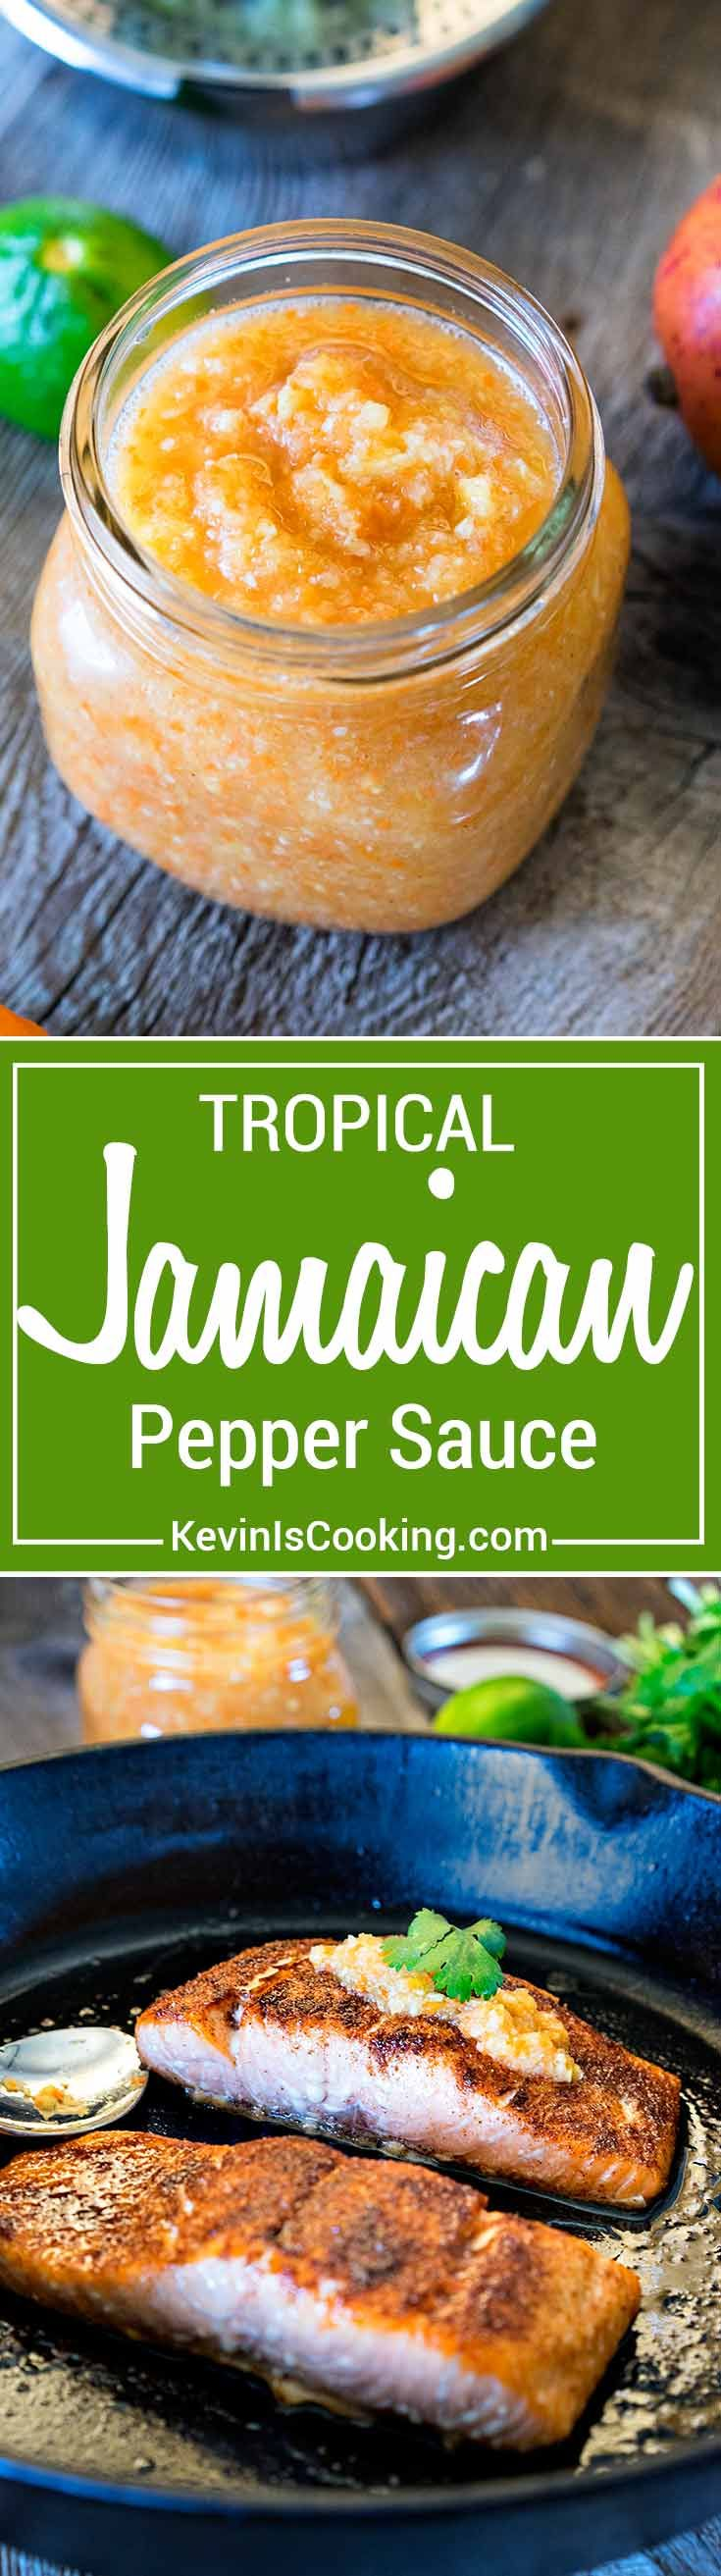 This Jamaican Pepper Sauce brings the heat with habaneros, mango, pineapple and cumin, but the secret flavor weapon ingredient I like to add is a carrot. via @keviniscooking